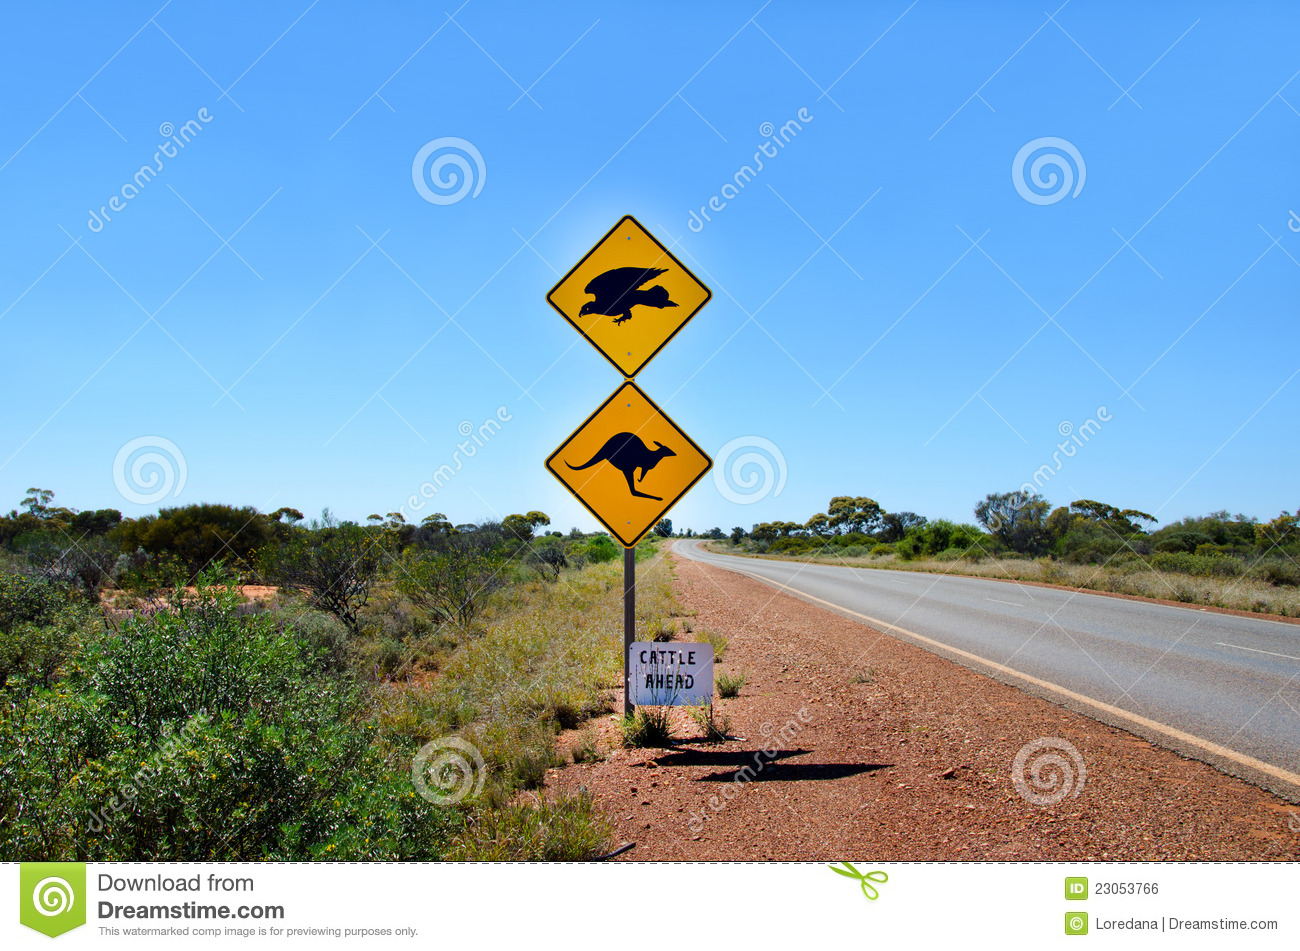 australian-kangaroo-eagle-warning-sign-s-23053766.jpg